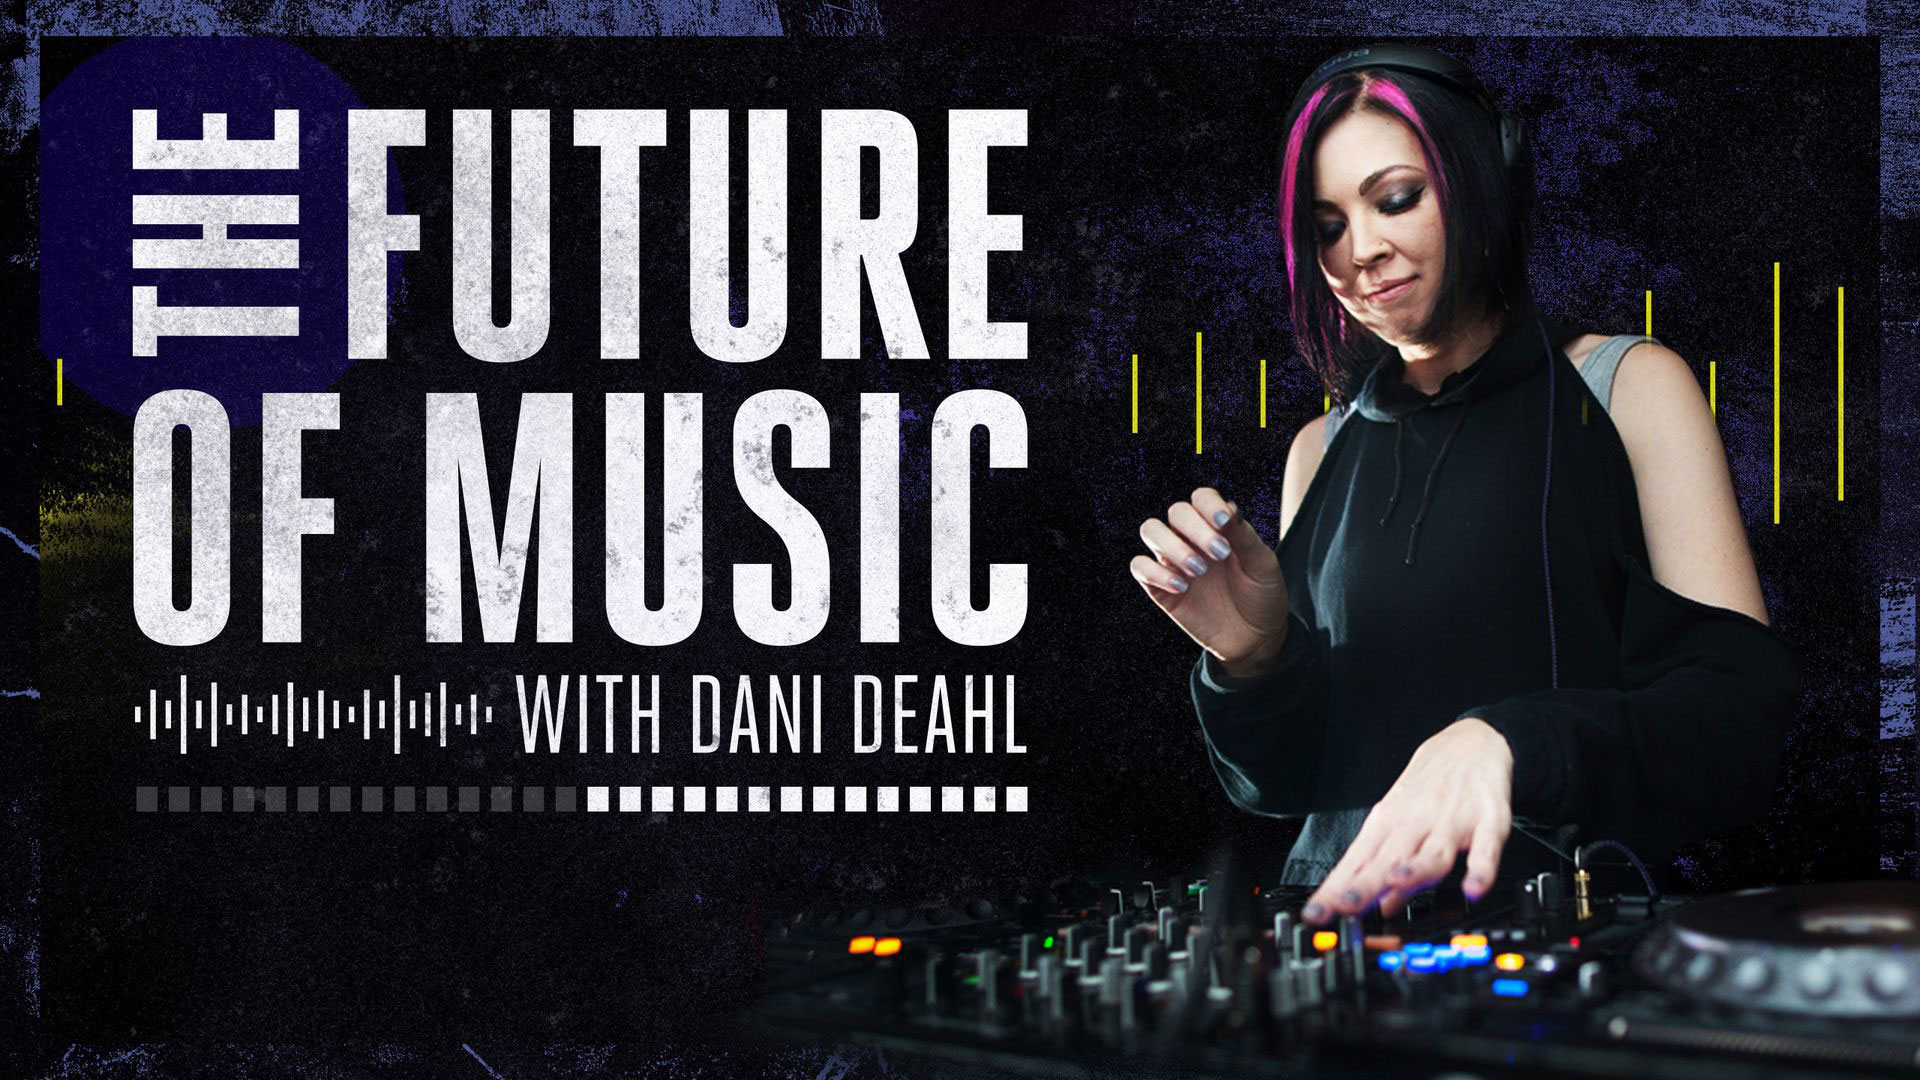 The Future of Music by Dani Deahl